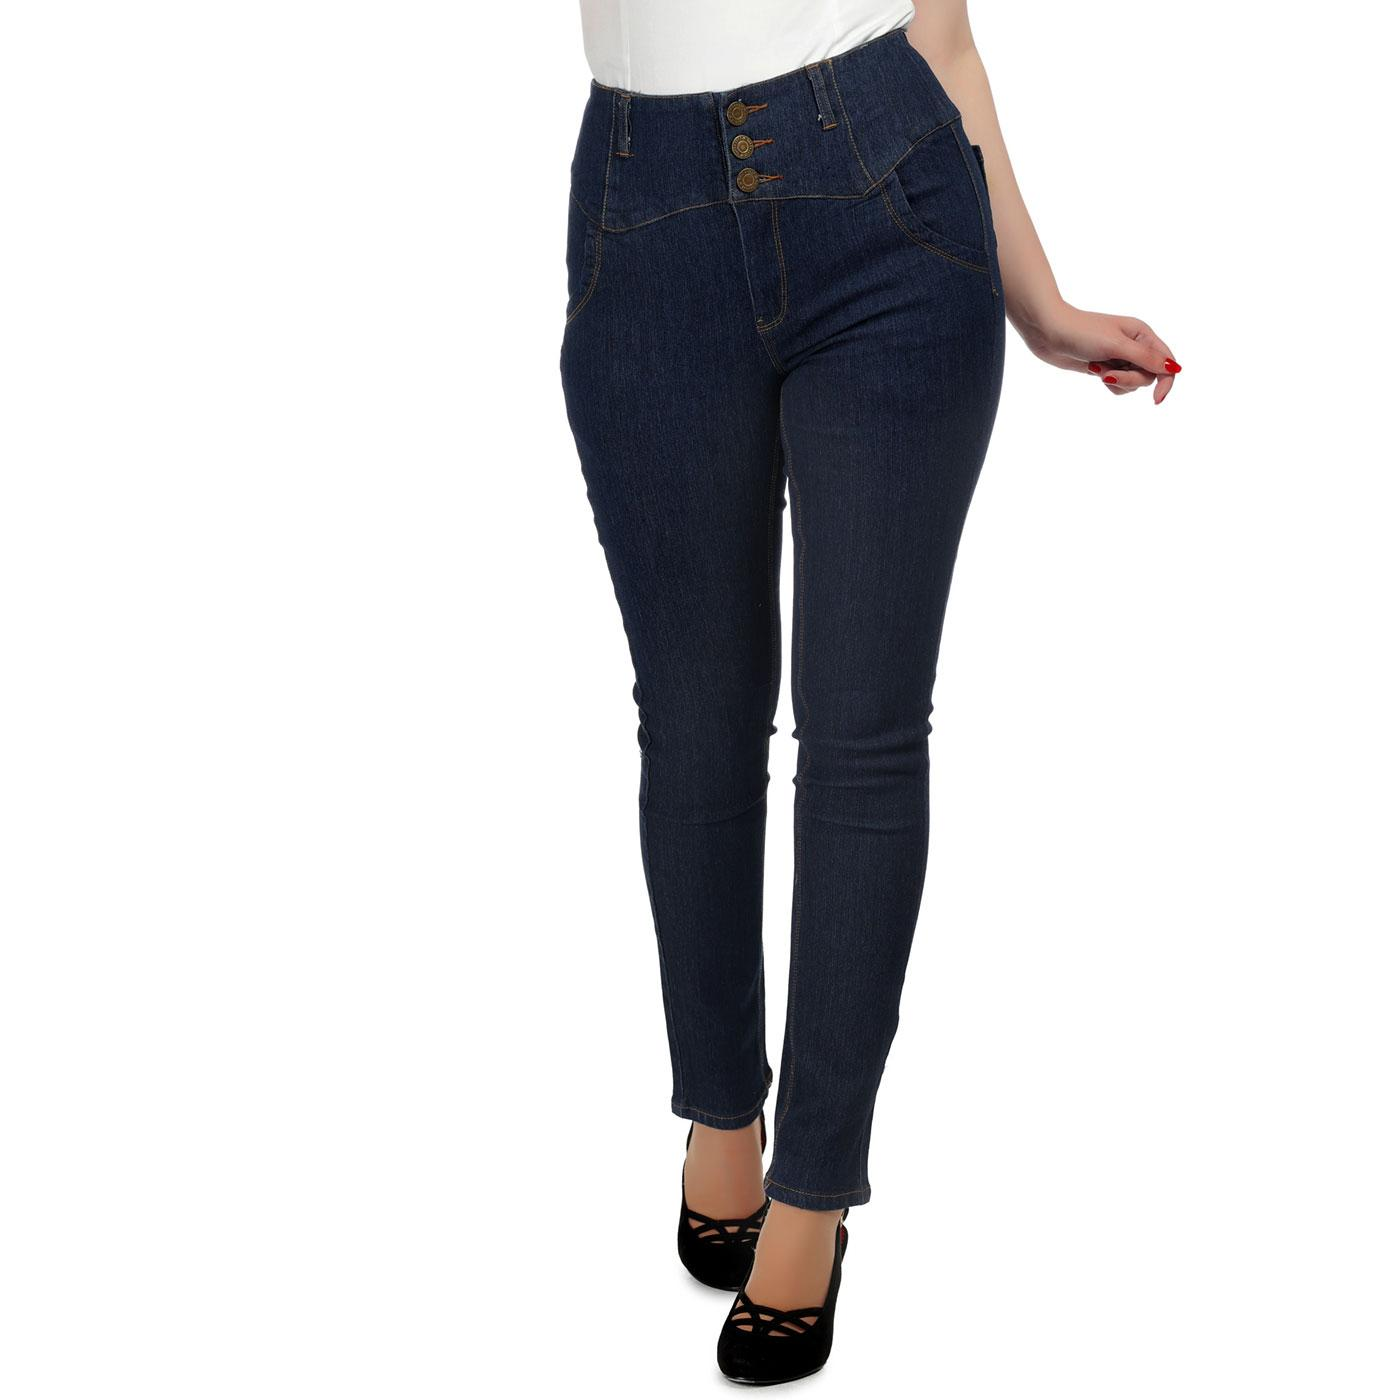 Rebel Kate COLLECTIF Retro Skinny Jeans in Navy